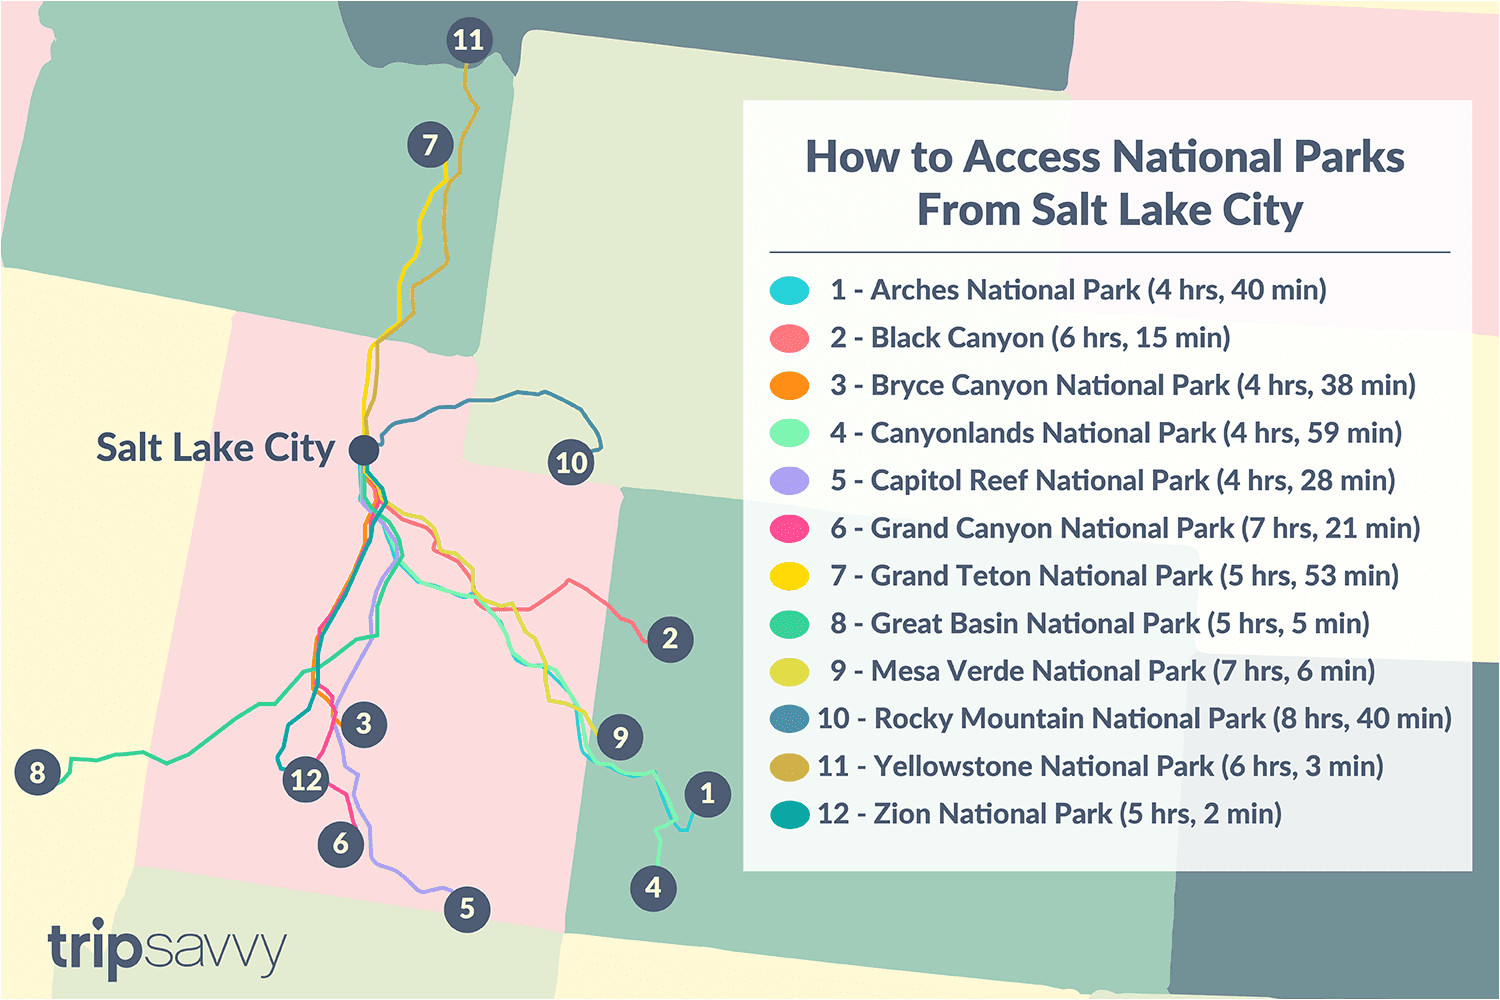 driving distance drive times from salt lake city to national parks 3362273 final ac 01 5c13ff0646e0fb000166e90b png